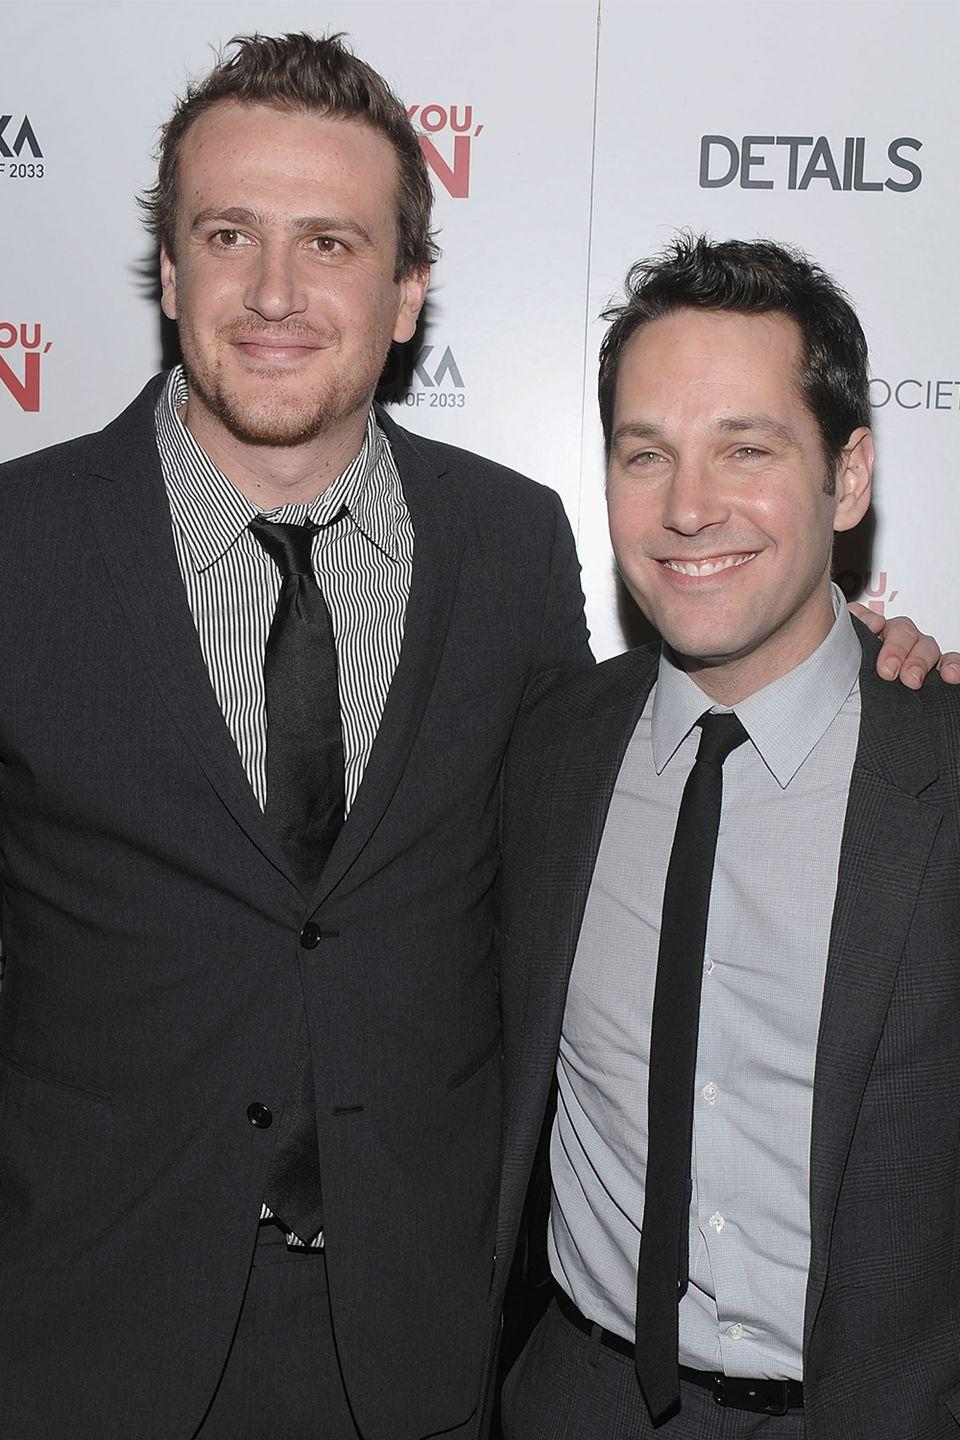 """<p>While talking about their newest movie, <em>I Love You Man</em>, Segel and Rudd very subtly (but not that subtly) hint that <a href=""""https://www.youtube.com/watch?v=I4ix1HSzpWE"""" rel=""""nofollow noopener"""" target=""""_blank"""" data-ylk=""""slk:they are both stoned"""" class=""""link rapid-noclick-resp"""">they are both stoned</a>. At the beginning of the interview they go back and forth naming other movies with """"bromance"""" storylines, and everything they name happens to have the word """"stone"""" in it. Then they start talking about Segel's imaginary friend and can't stop laughing. </p>"""